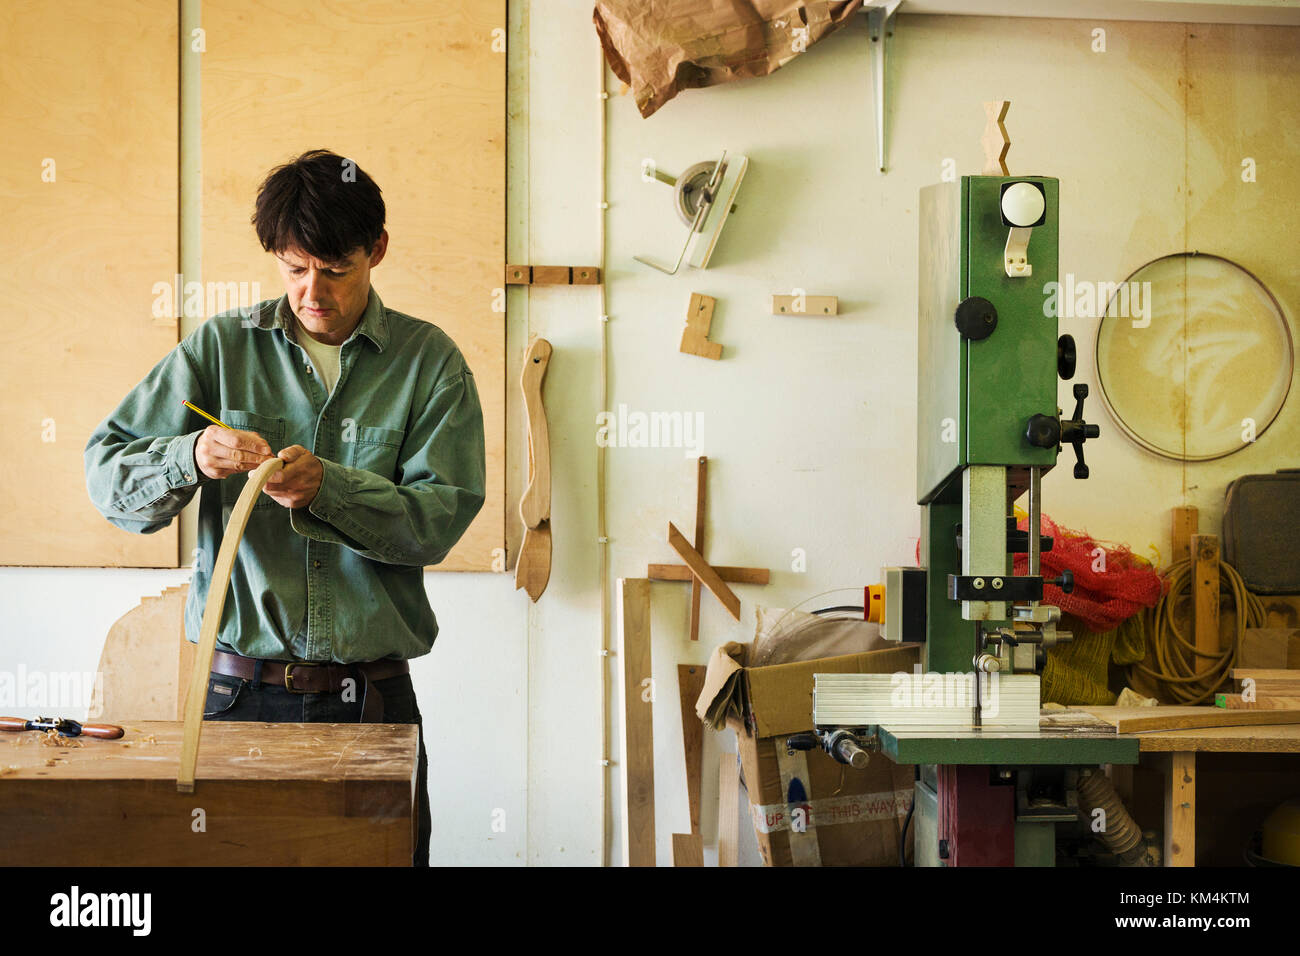 A craftsman marking a piece of curved wood with a pencil. - Stock Image